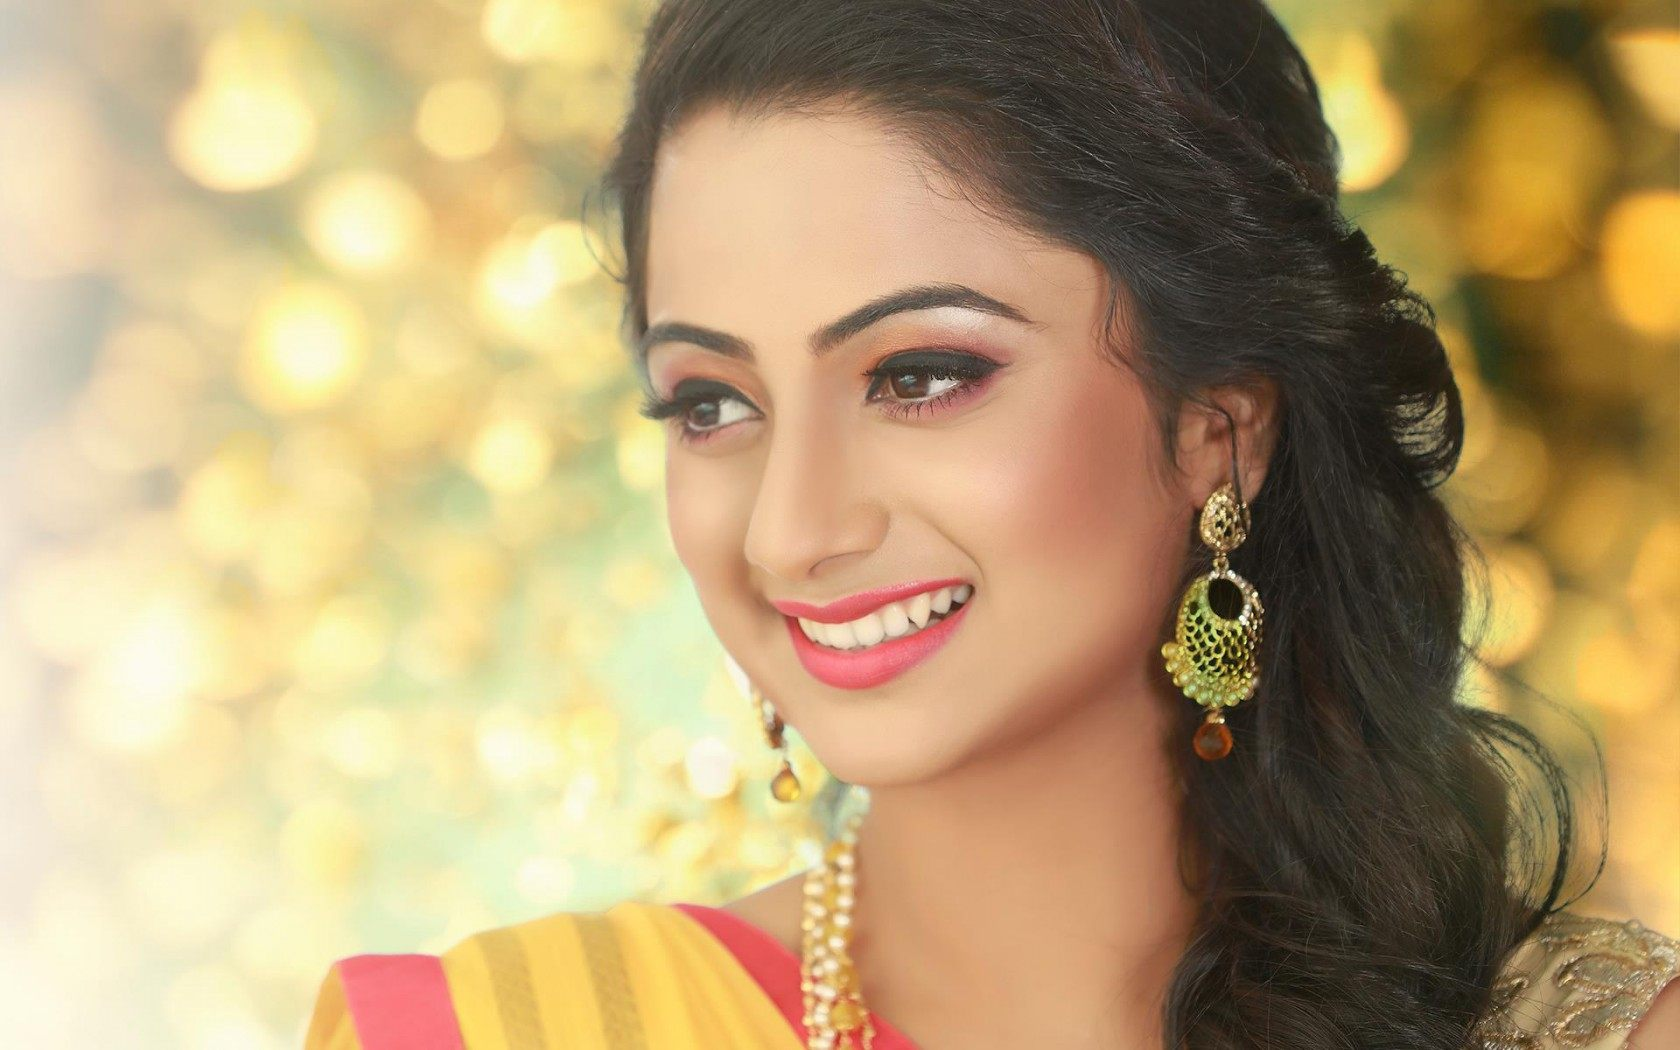 Namitha pramod hd indian celebrities 4k wallpapers images backgrounds photos and pictures - Hindi girl wallpaper download ...